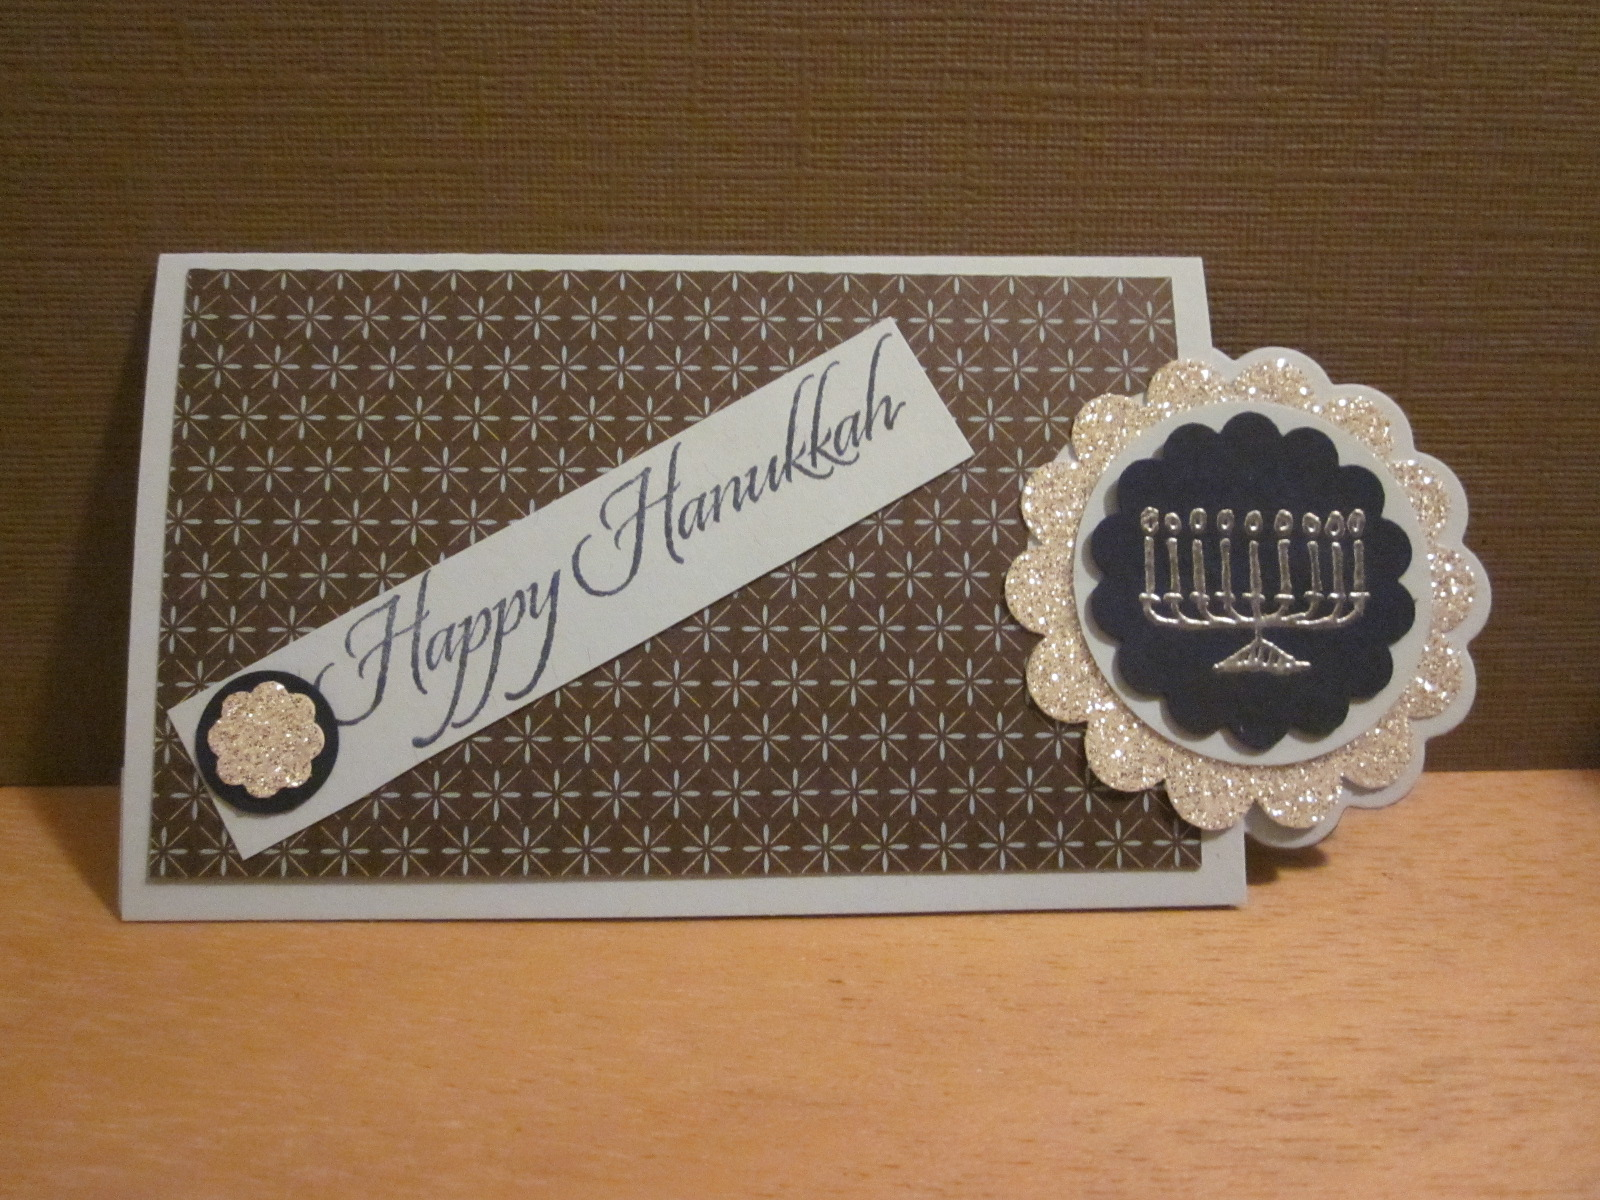 Hanukkah Hop Day 7 Rogue Thoughtsans Stamping Studio In The